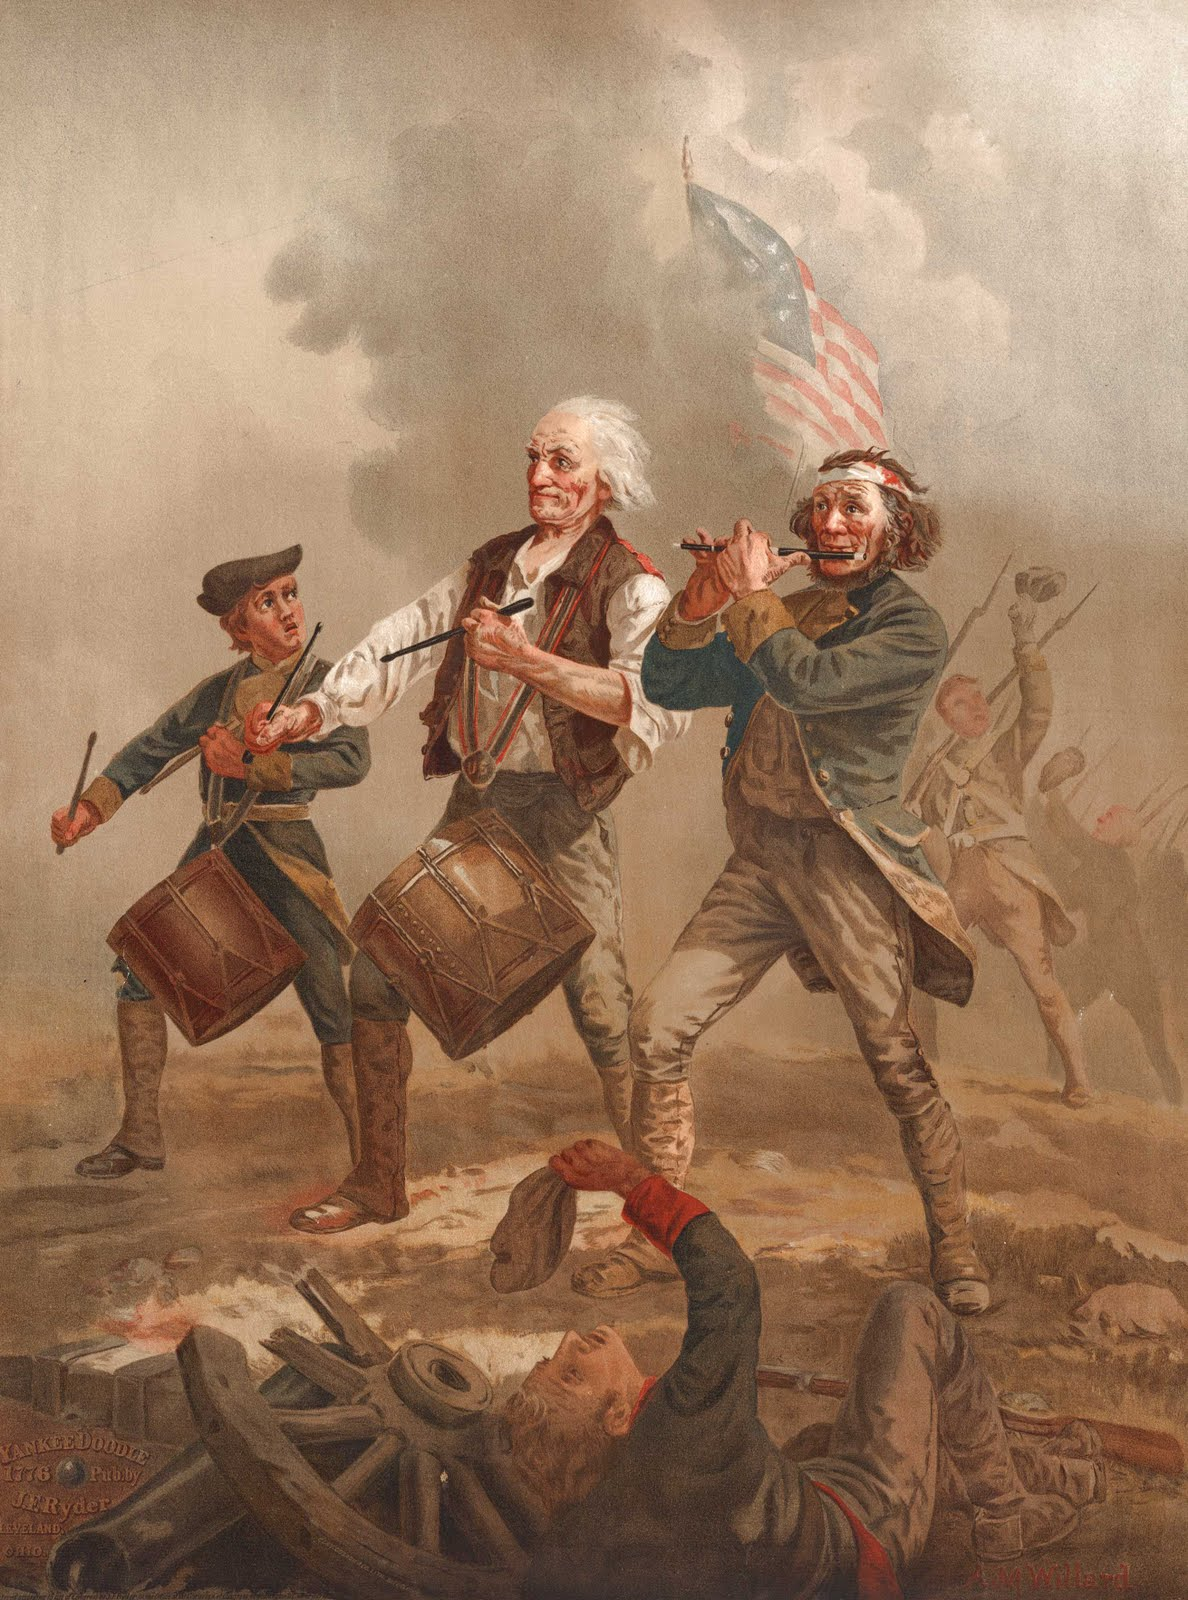 The Spirit of 76 aka Yankee Doodle by Archibald Willard